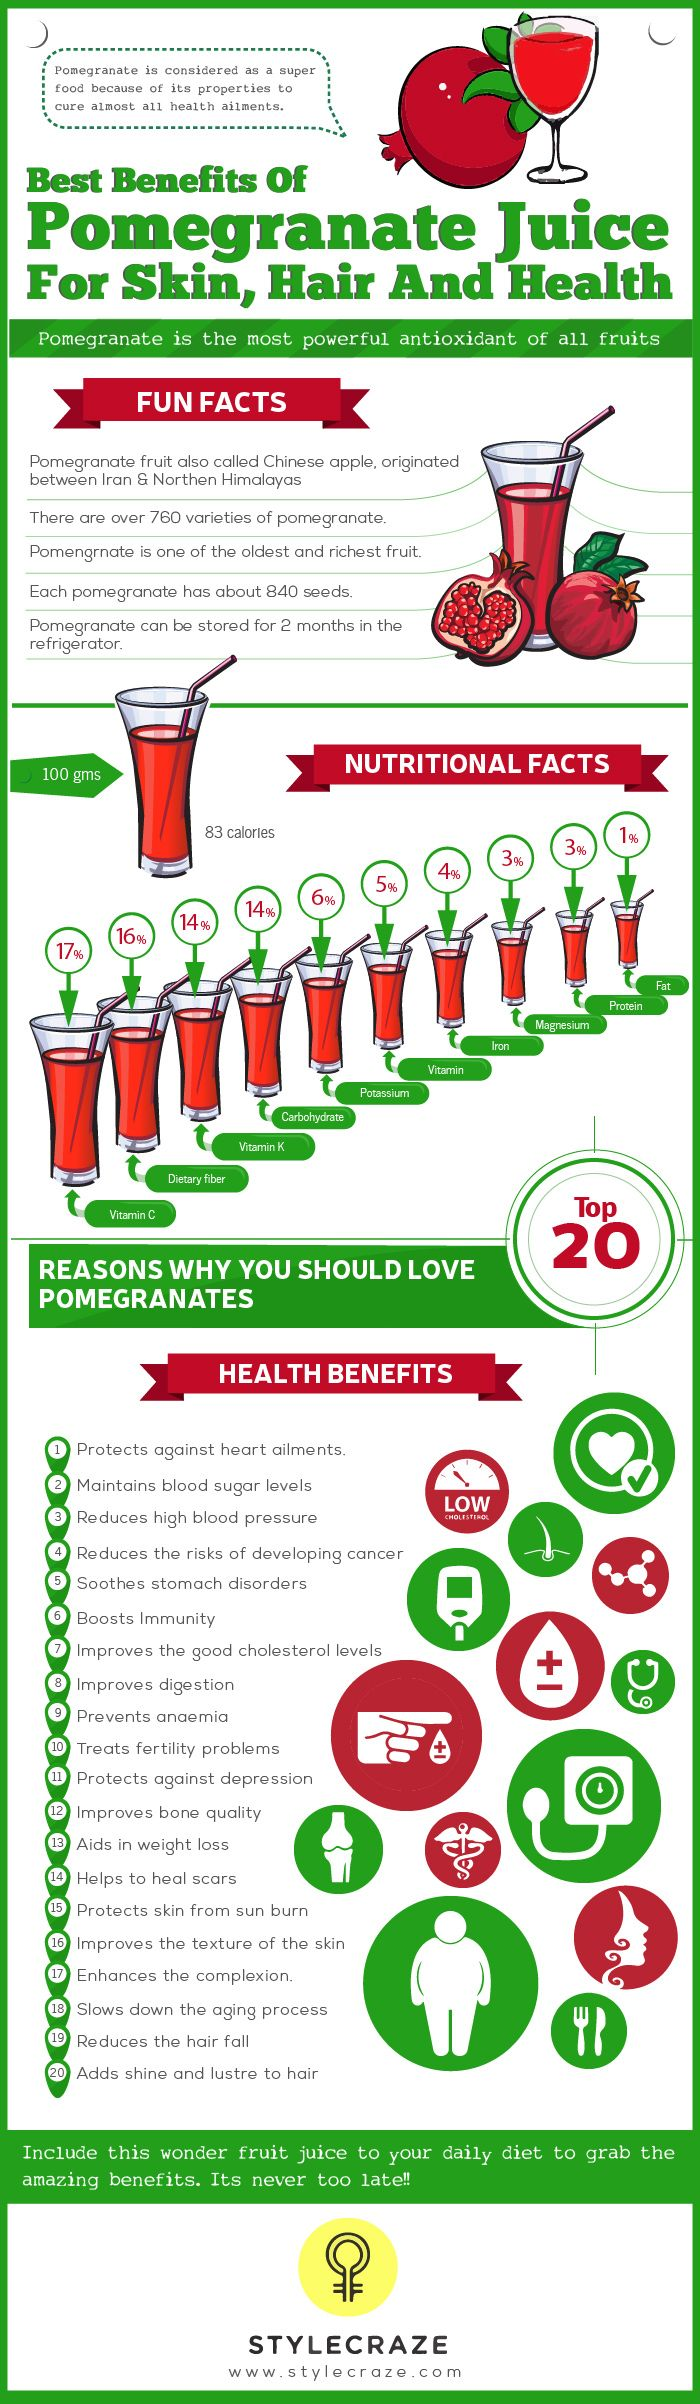 17 Best Benefits Of Pomegranate Juice (Anar Ka Ras) For Skin, Hair And Health advise